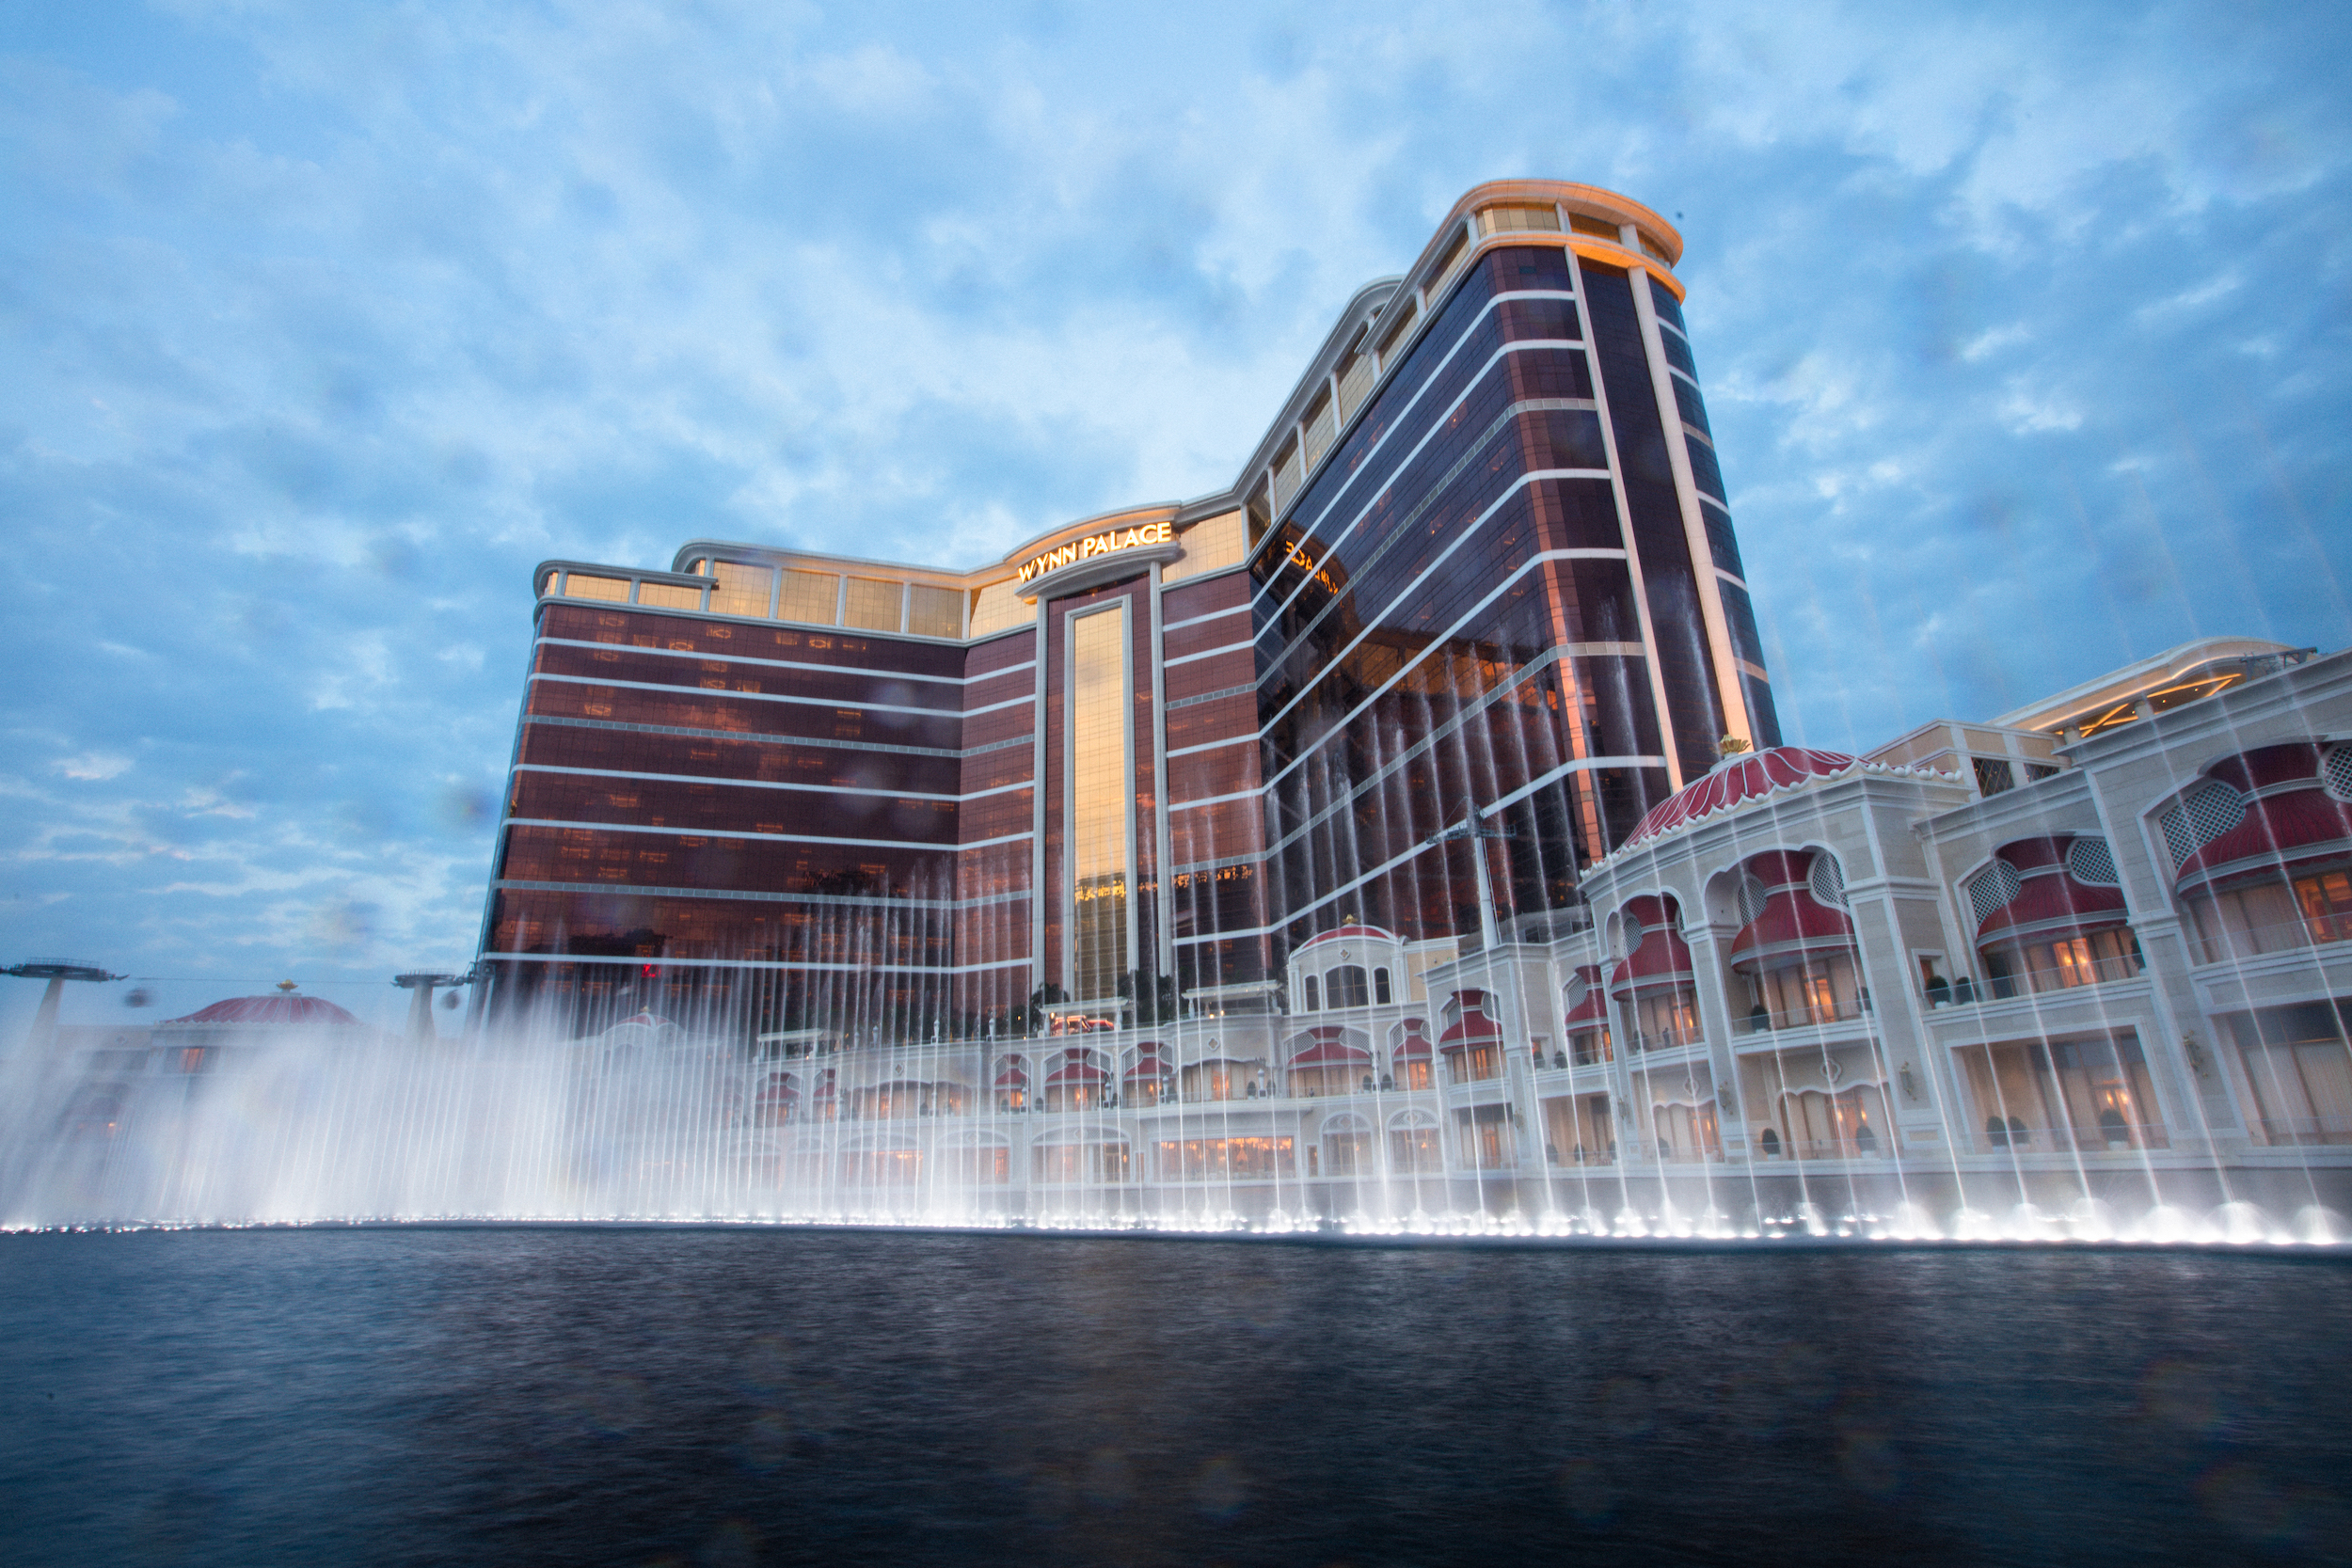 Suite escape: Wynn Palace offers the ultimate getaway